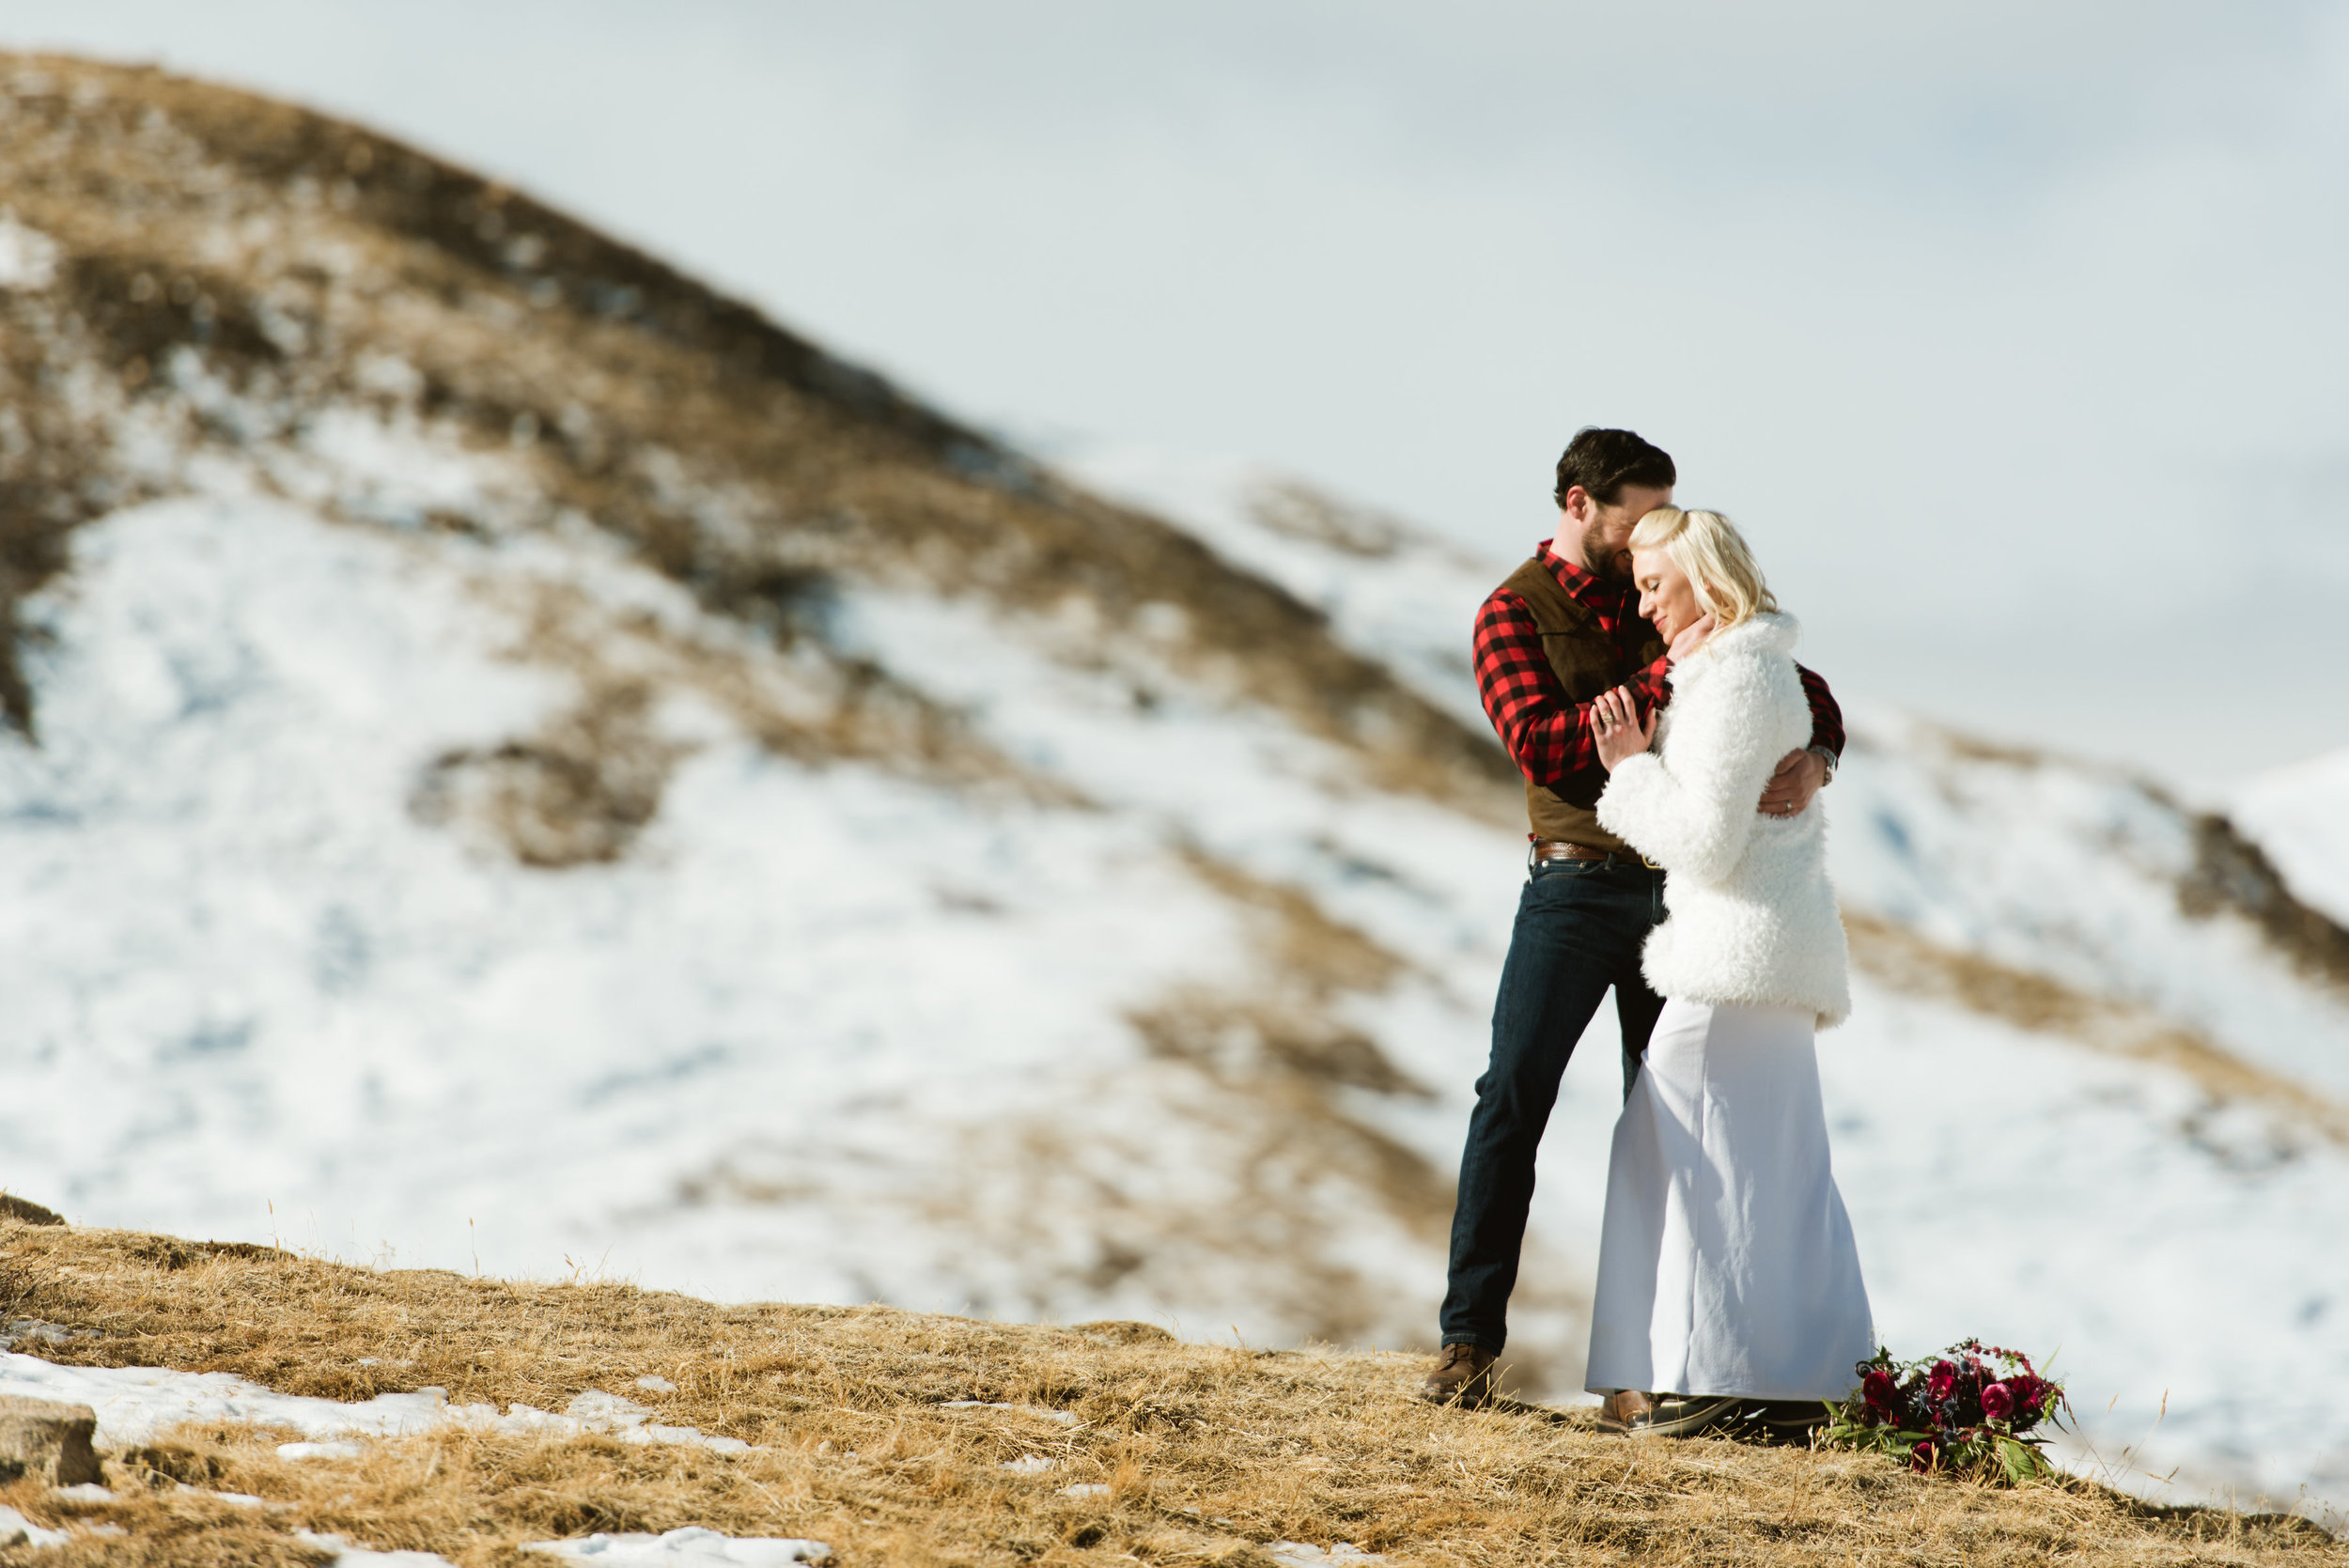 It looks chilly. but they have each other to warm up!Winter elopements are so beautiful!| Colorado elopement photography by Maddie Mae